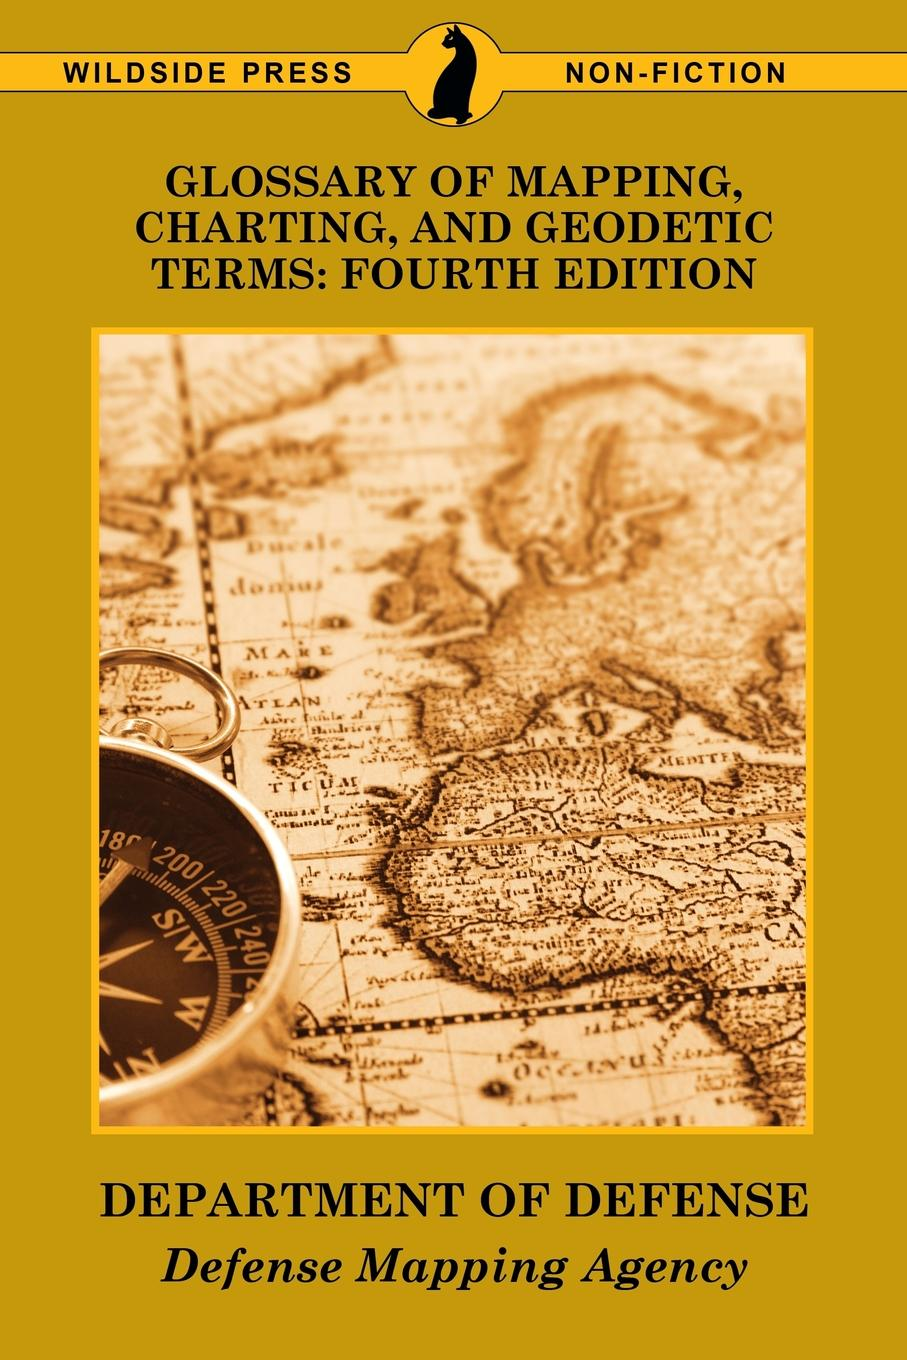 Department of Defense, Defense Mapping Agency Glossary of Mapping, Charting, and Geodetic Terms. Fourth Edition maryland mapping agency second report of maryland mapping agency